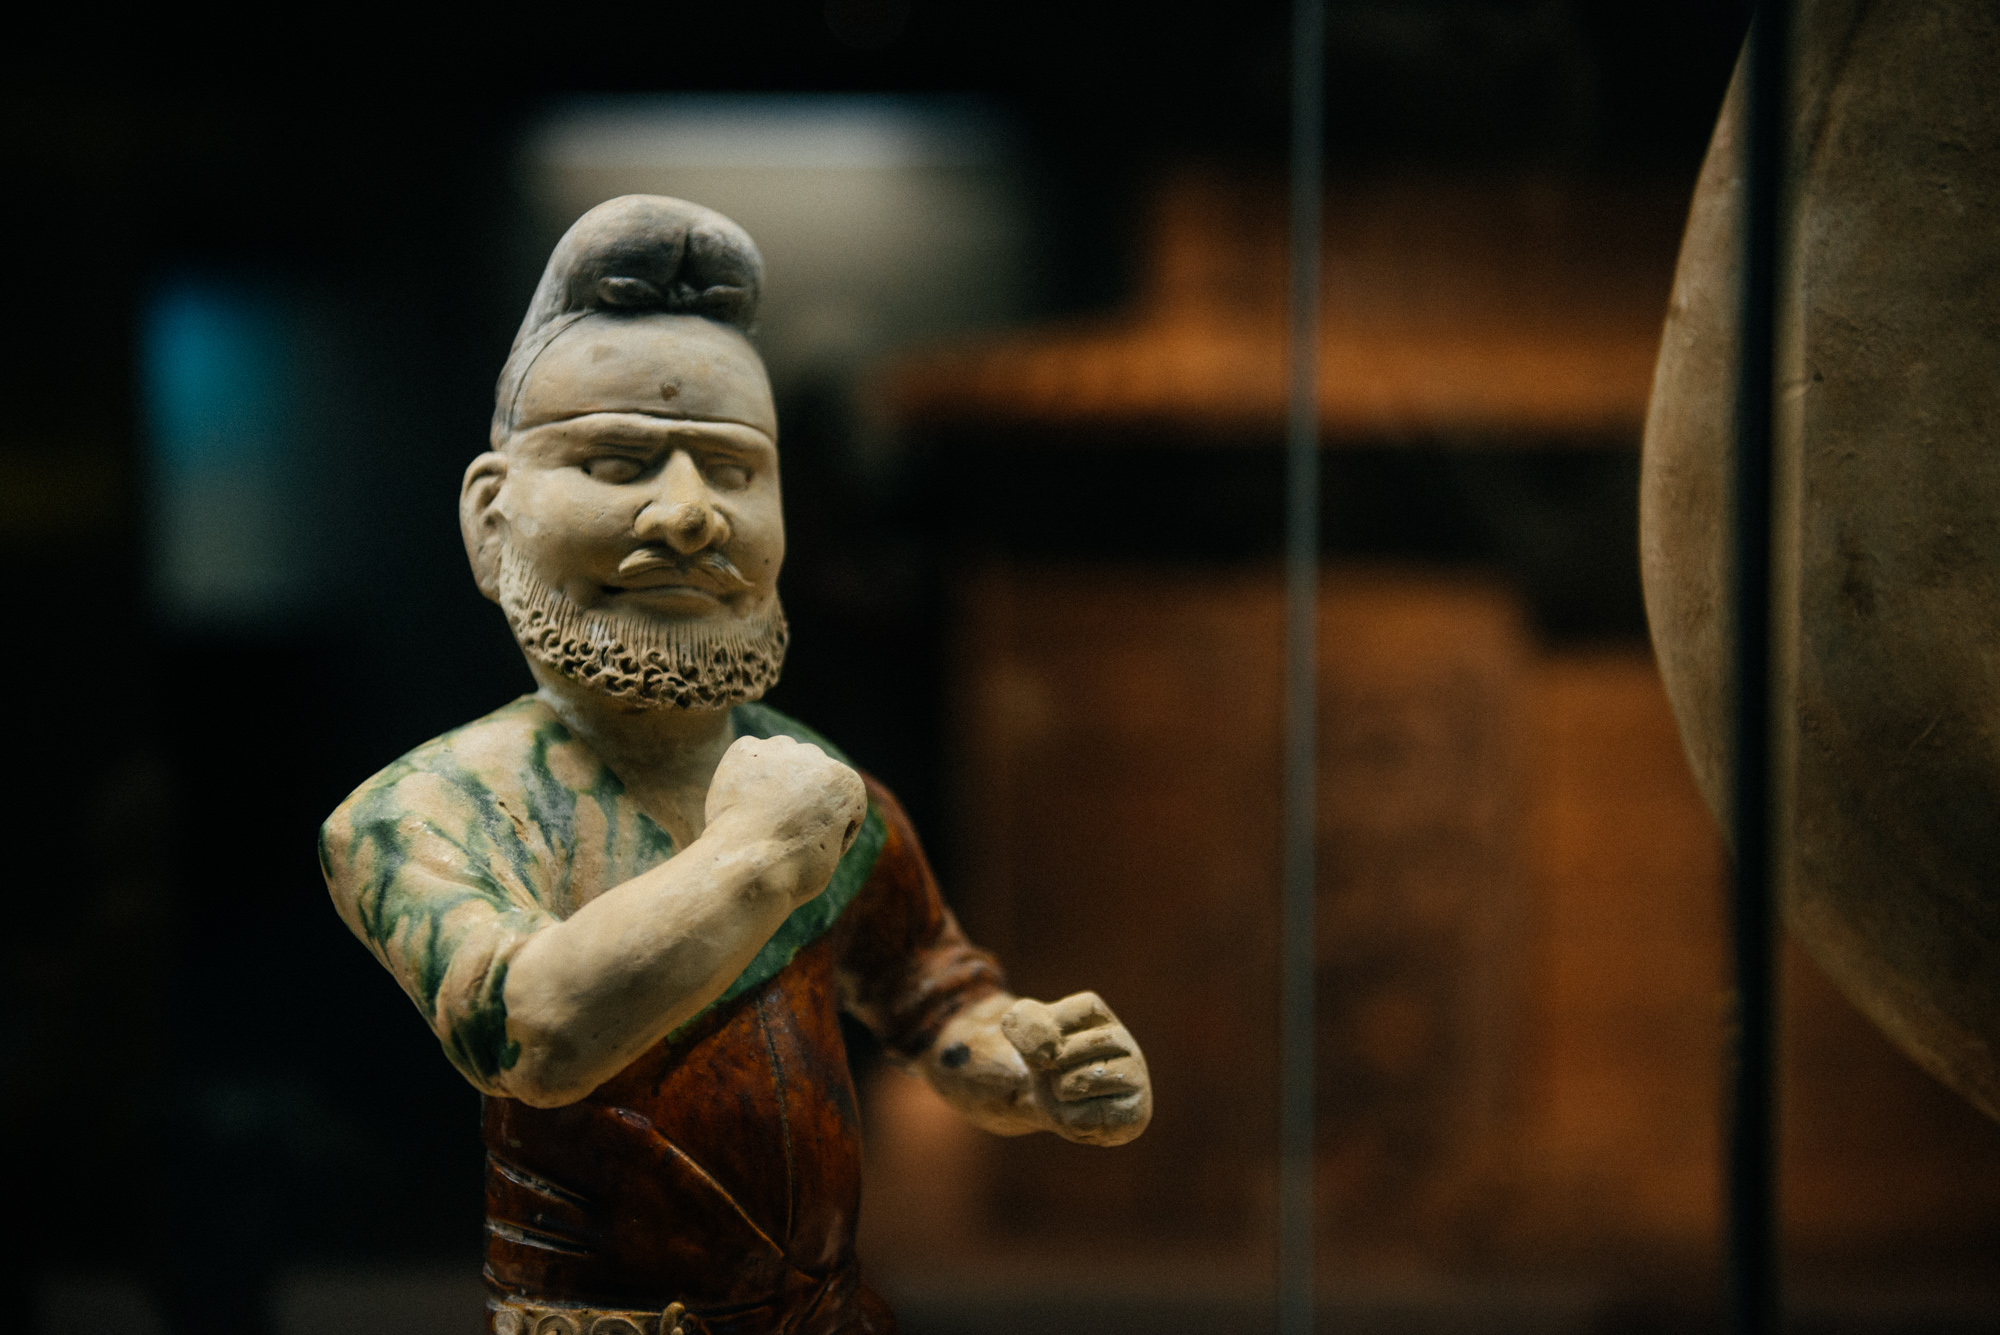 """I call this one """"come fight with papa smurf"""". This is a depiction of a foreigner from ancient China. """"The non-asian have big noses, small faces and beards"""", says a friend of mine."""